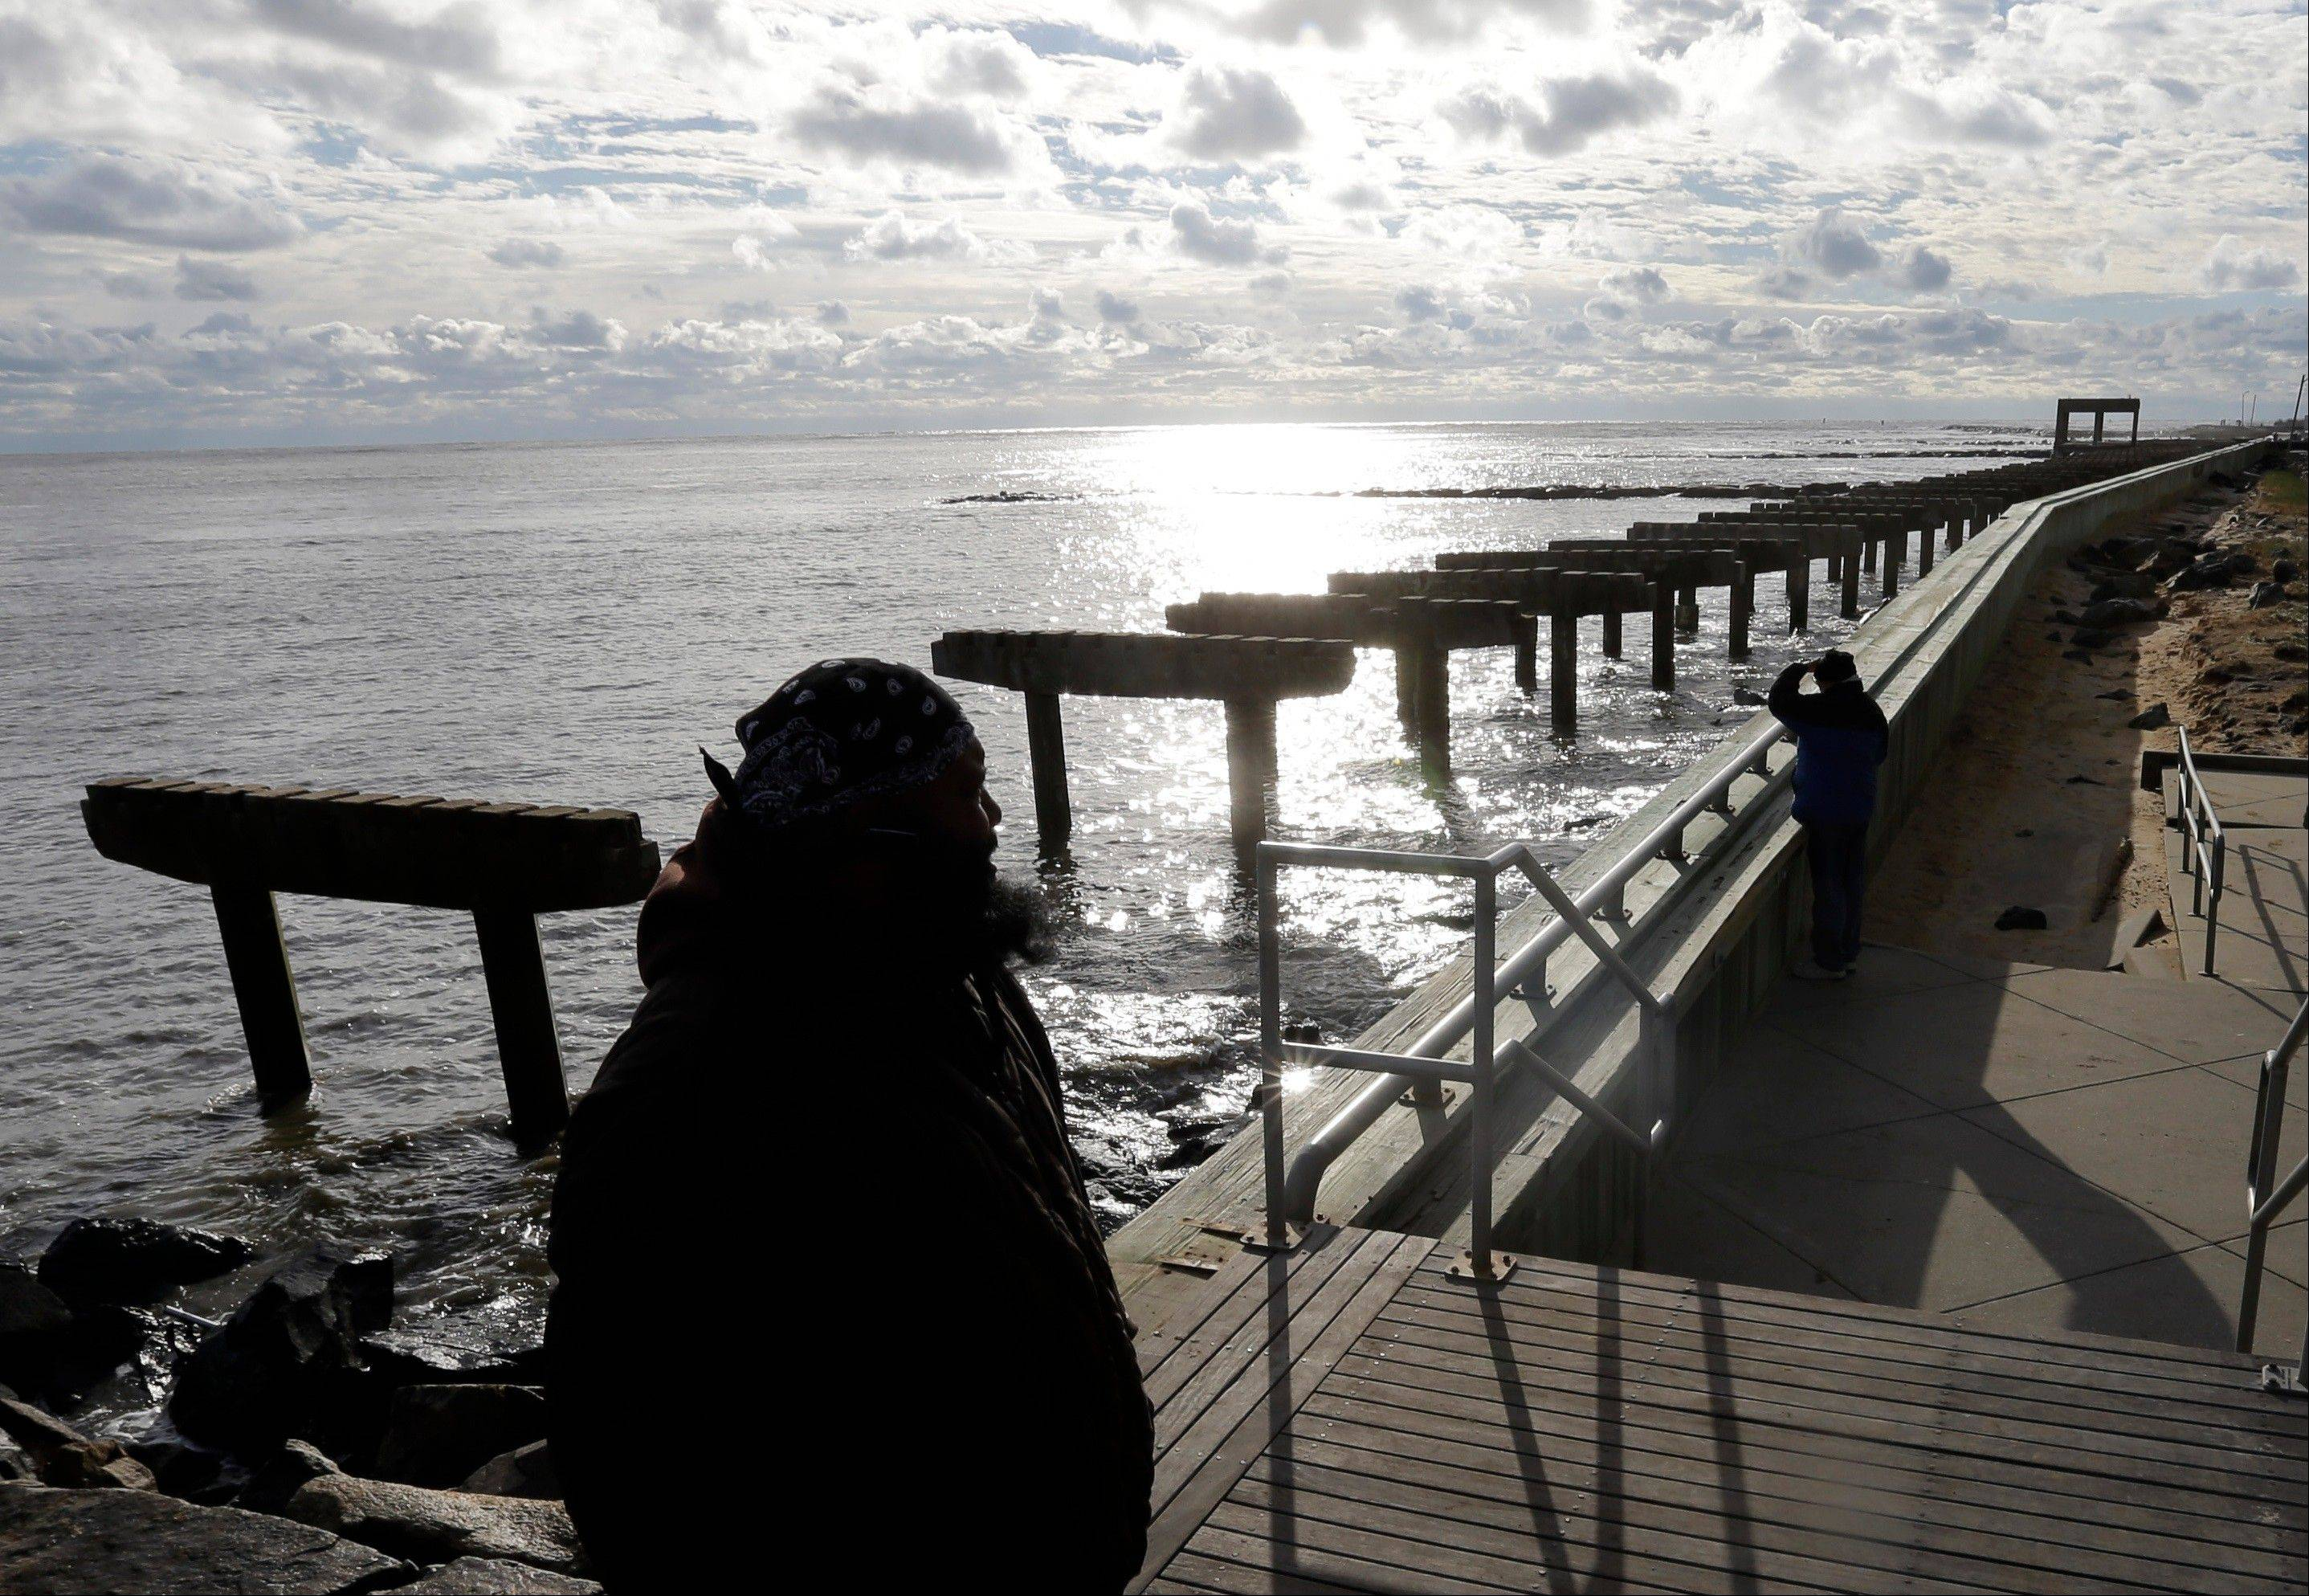 Lamar Stevens, bottom left, looks out at a boardwalk that was destroyed by superstorm Sandy in Atlantic City, N.J., Wednesday, Oct. 31, 2012.